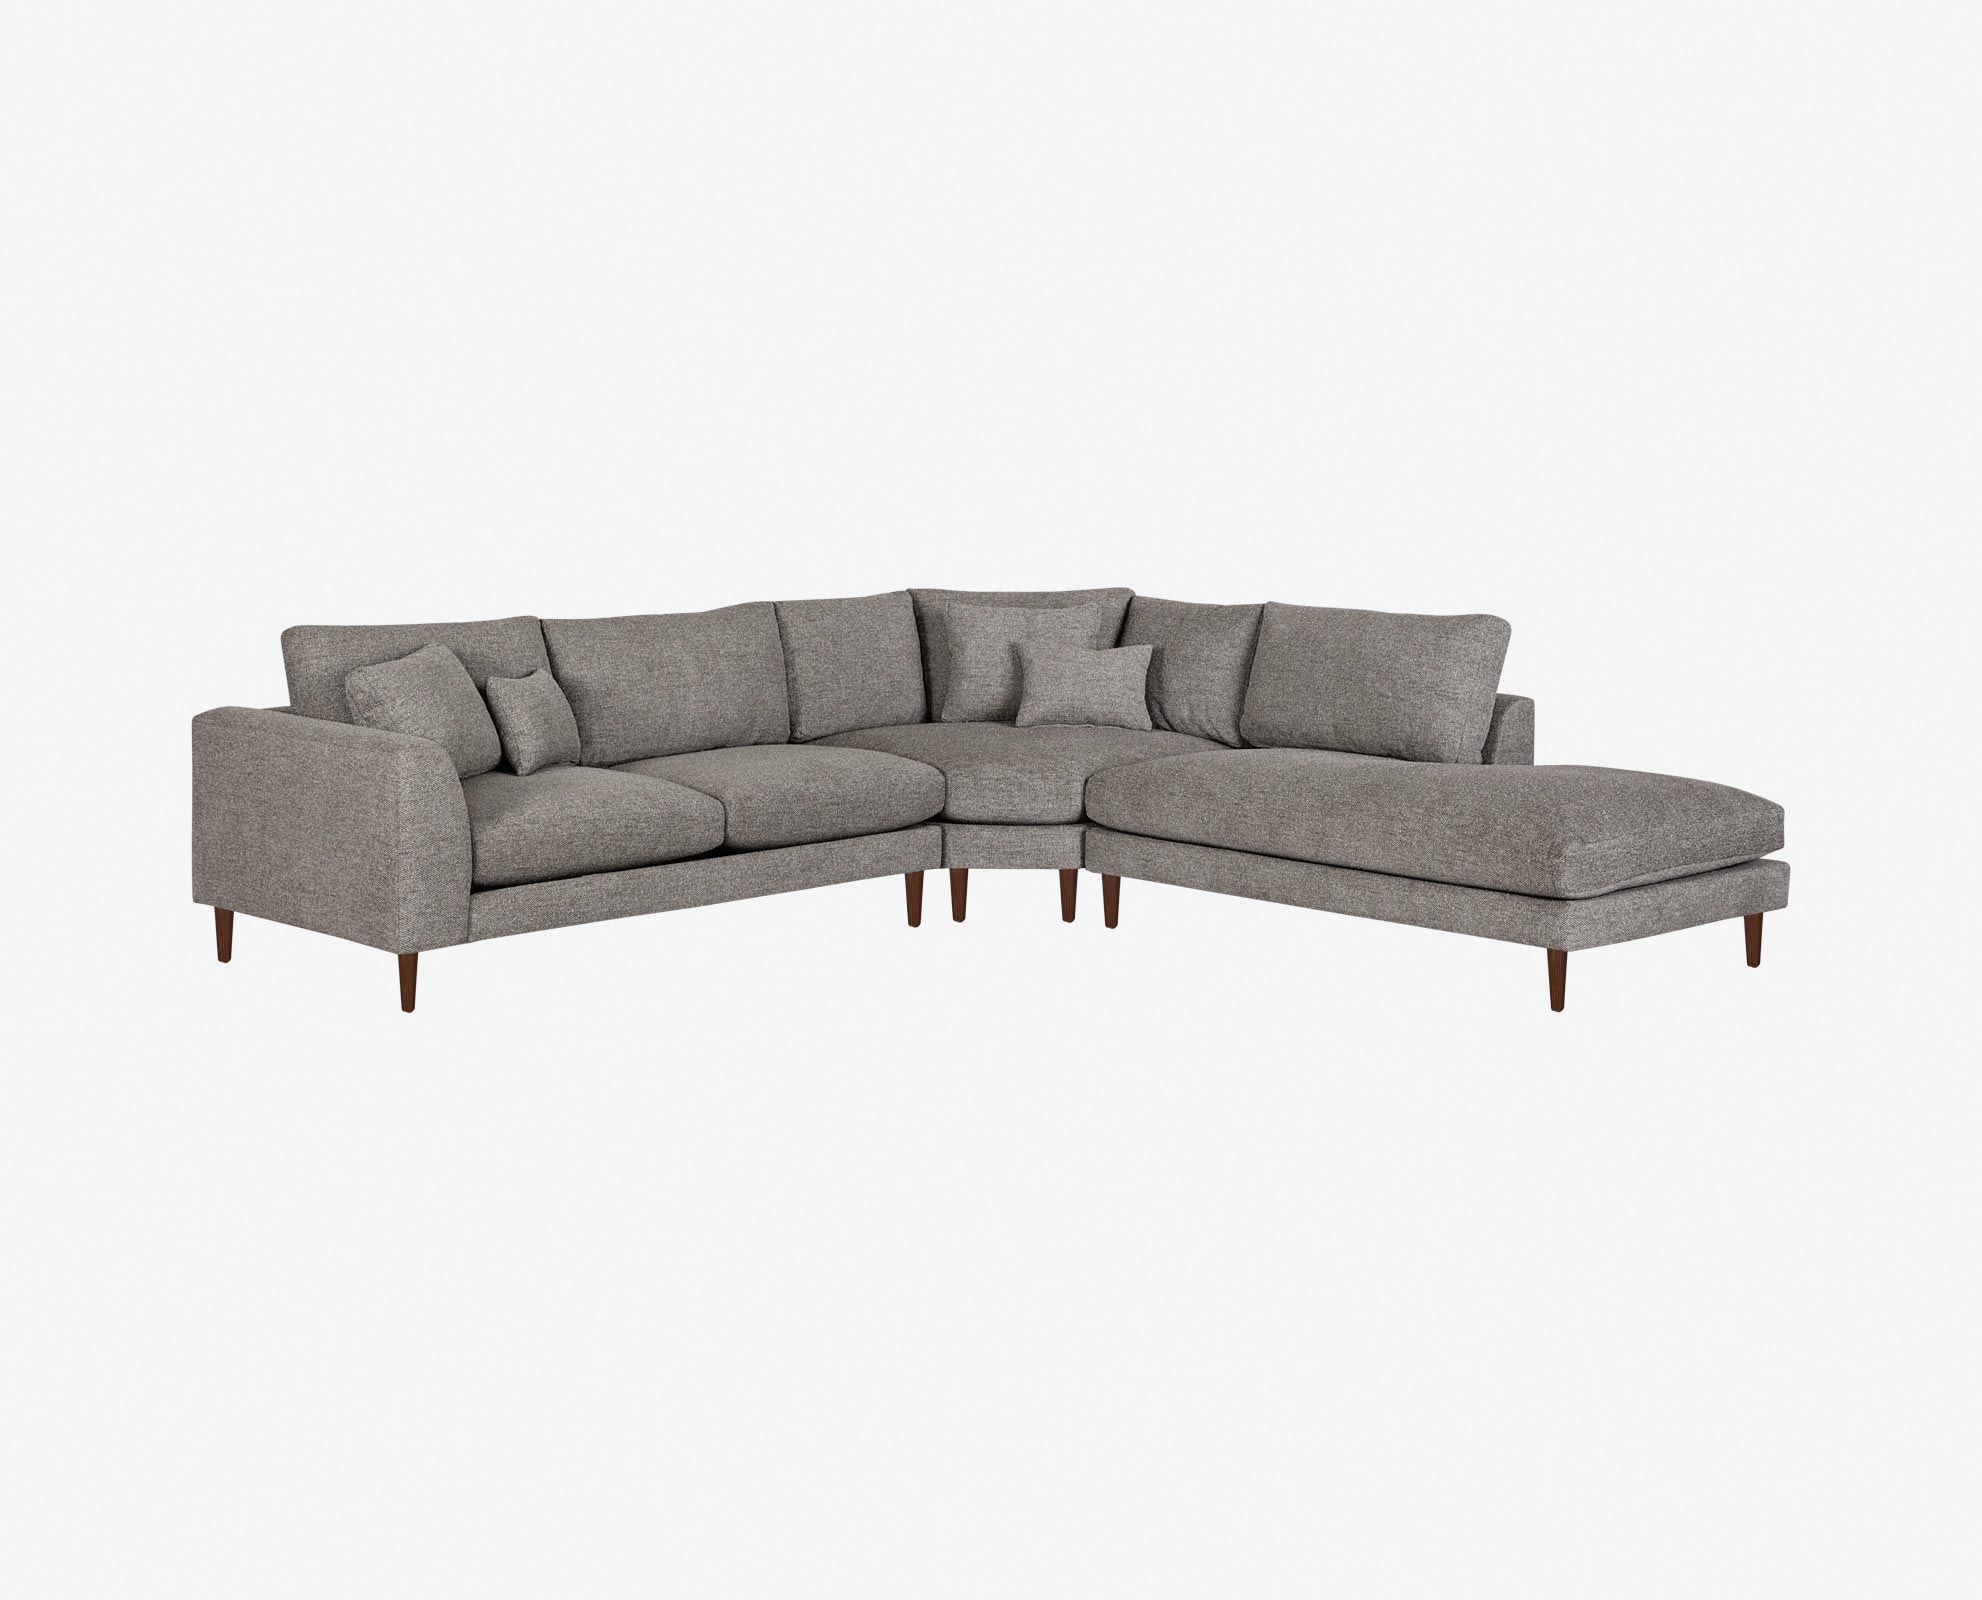 dania   the grand hugo sectional is a great value and a perfect fit for large dania   the grand hugo sectional is a great value and a perfect      rh   pinterest se